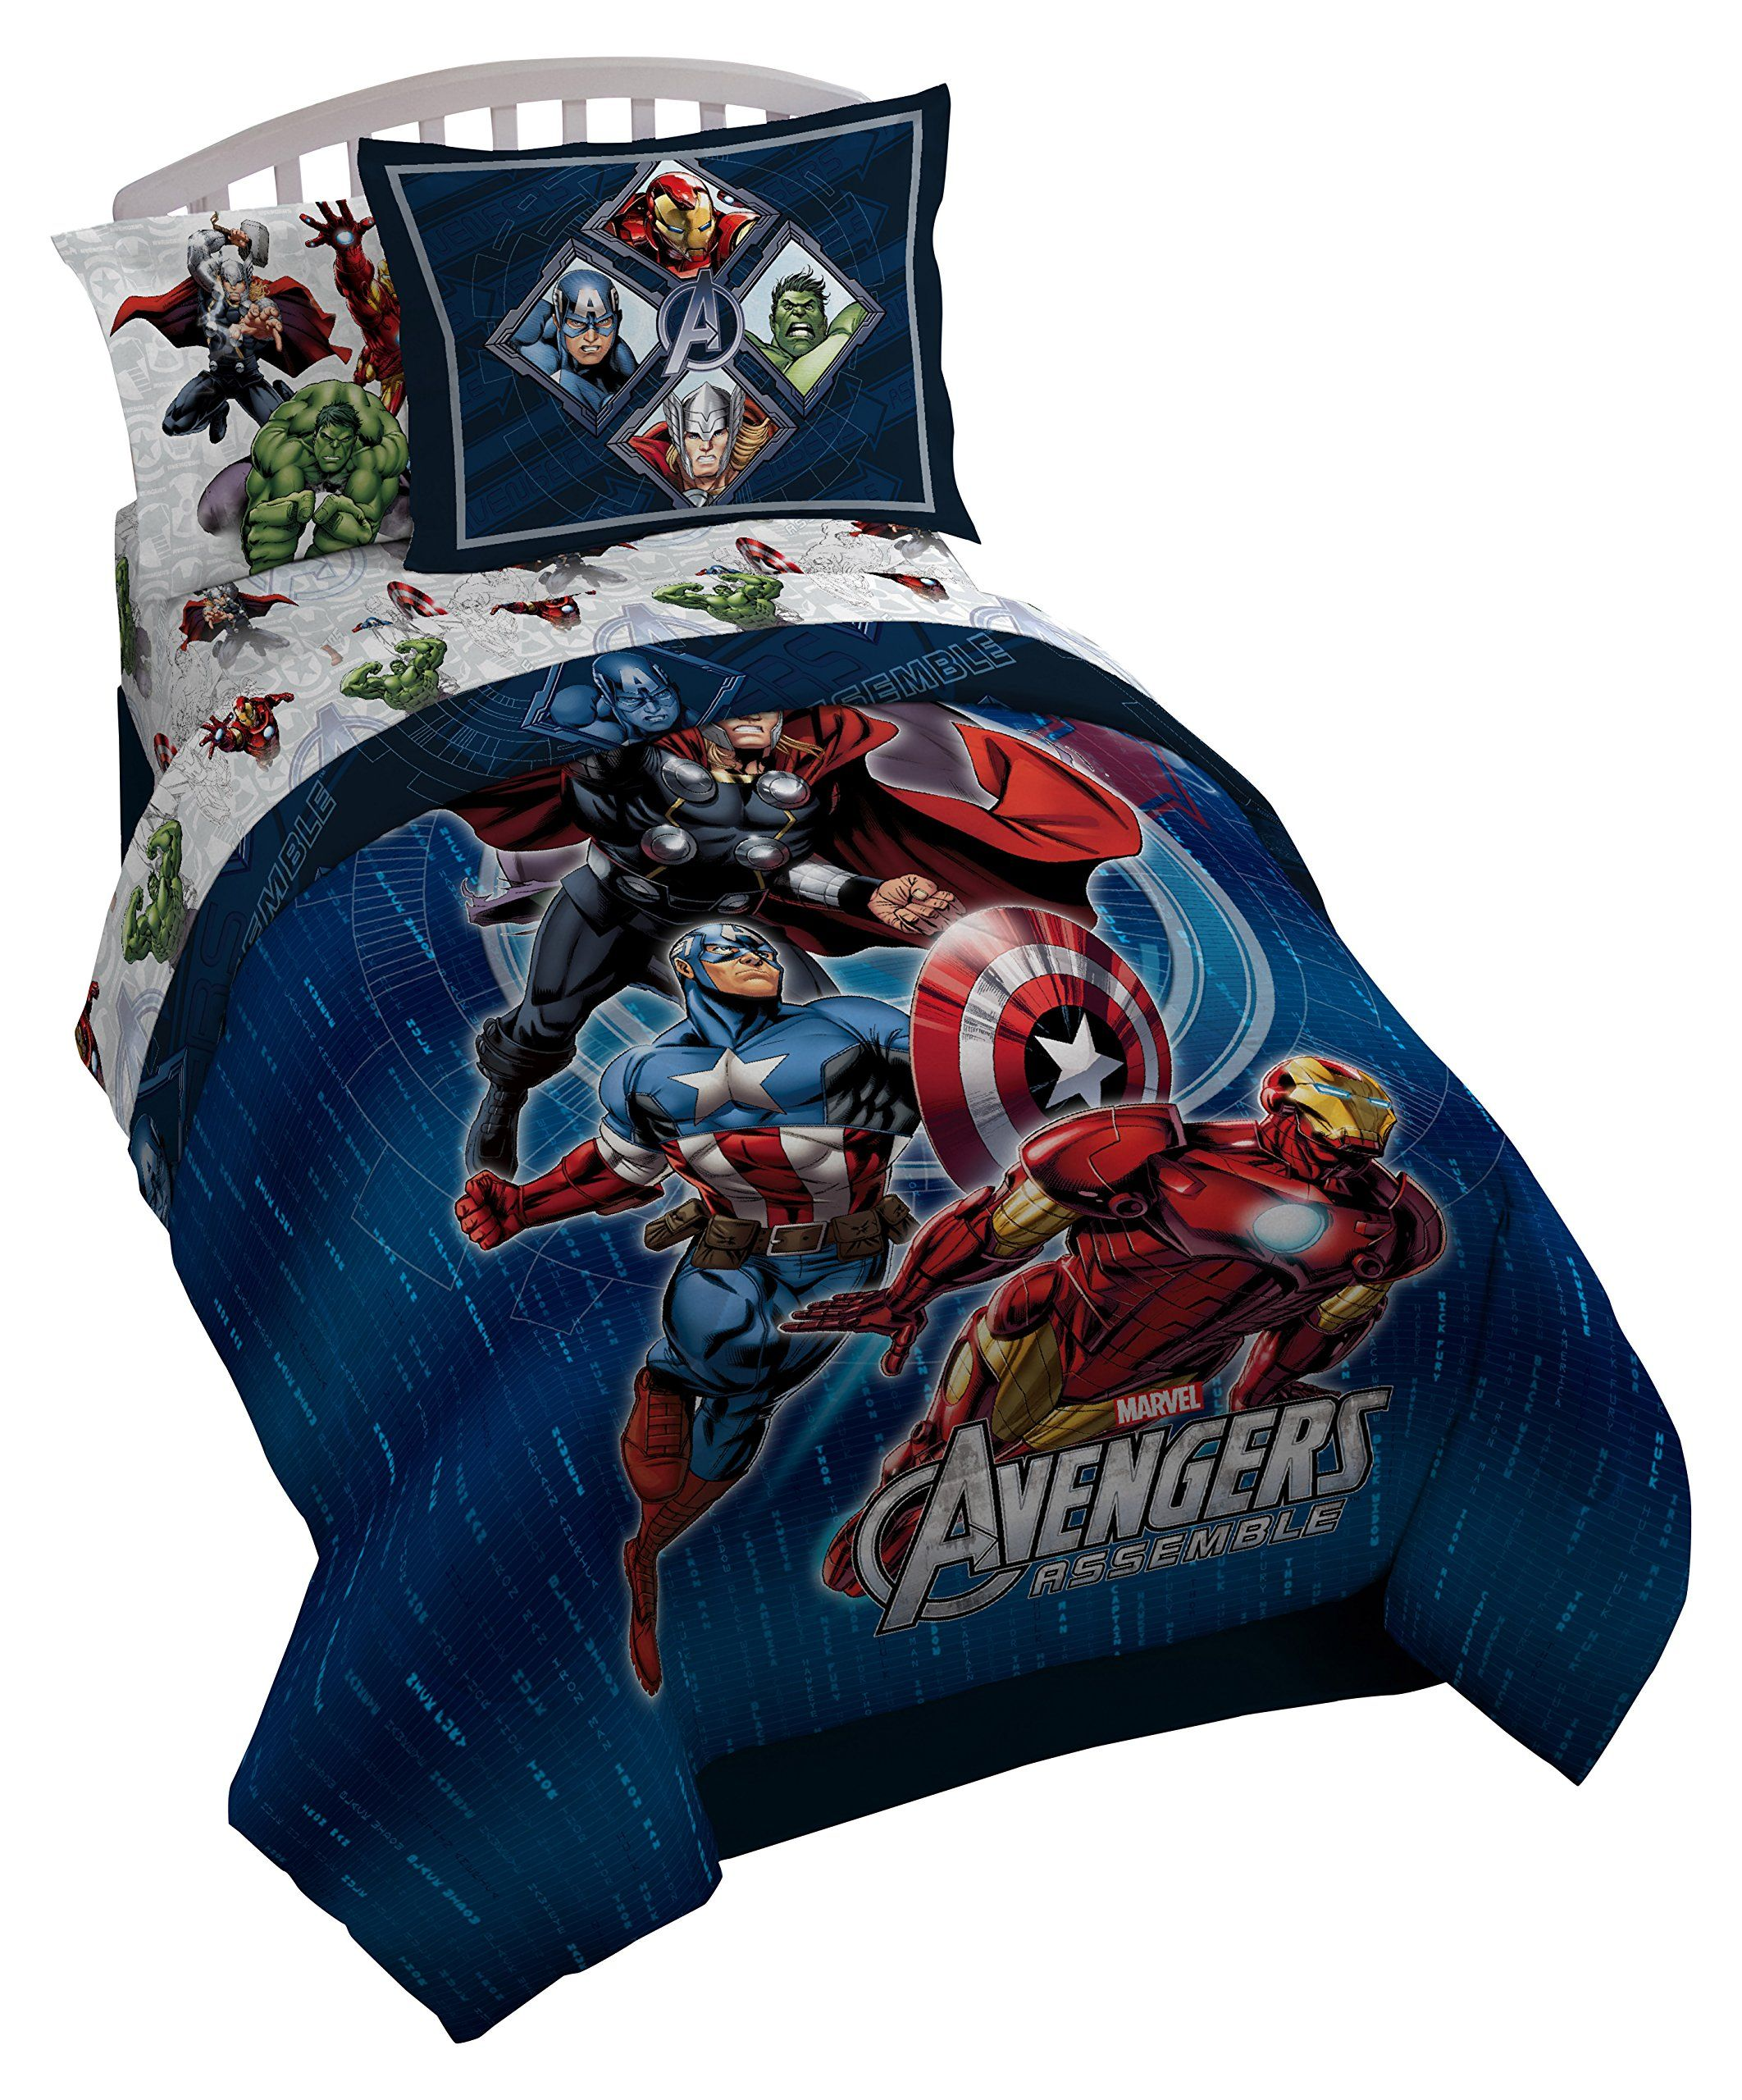 bedding set piece with avengers marvel war ease style civil comforter sets twin captain sheet sale america